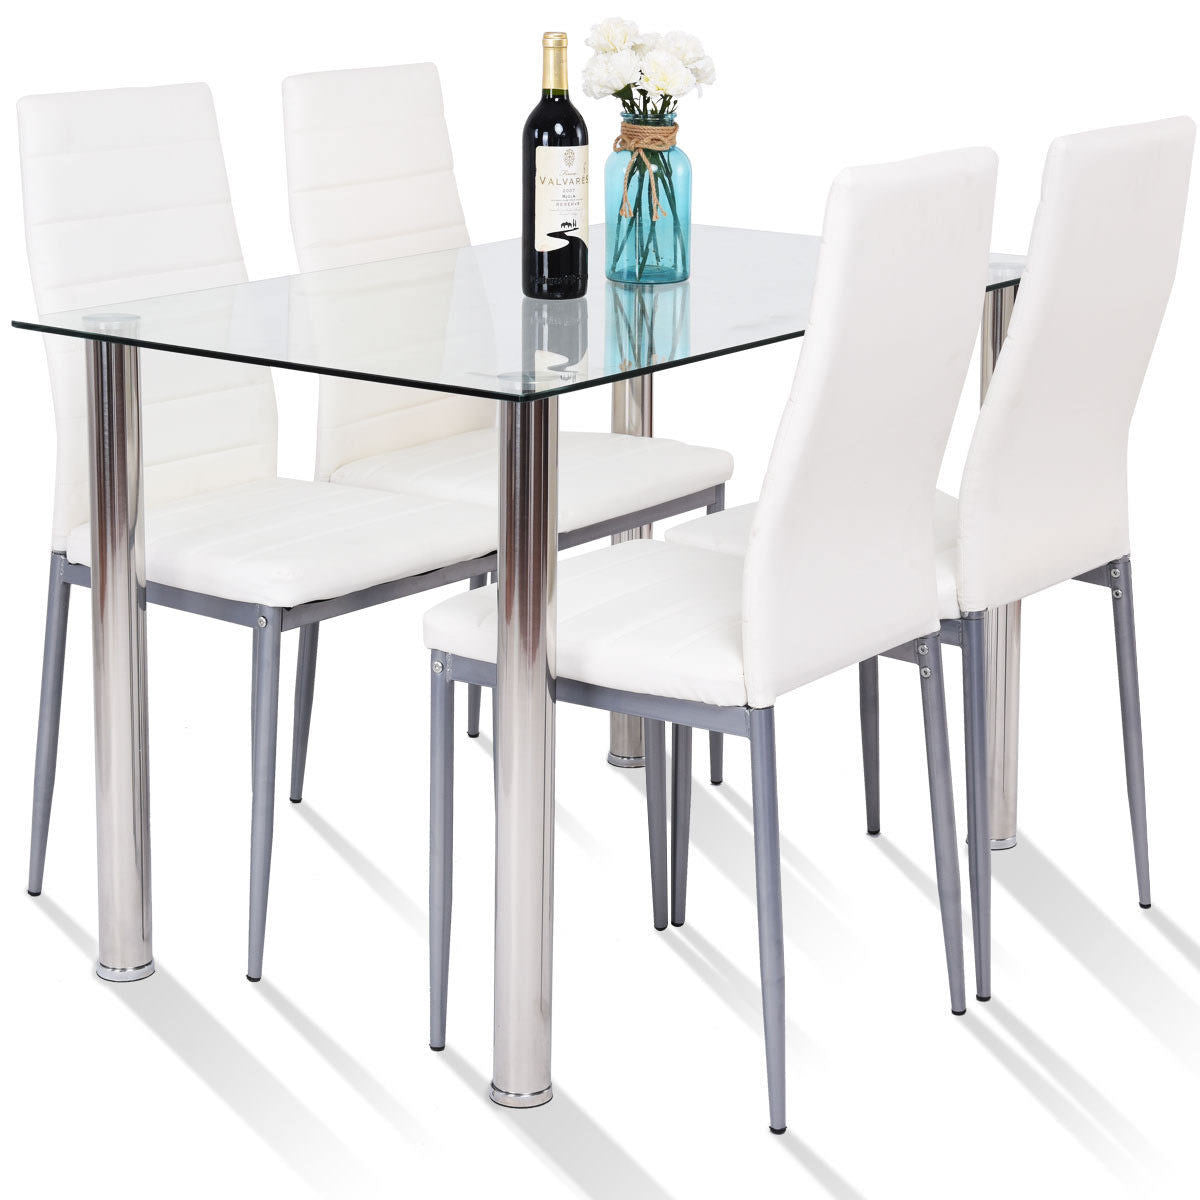 Load Image Into Gallery Viewer, 5 Piece Glass U0026amp; Metal Dining Set ...